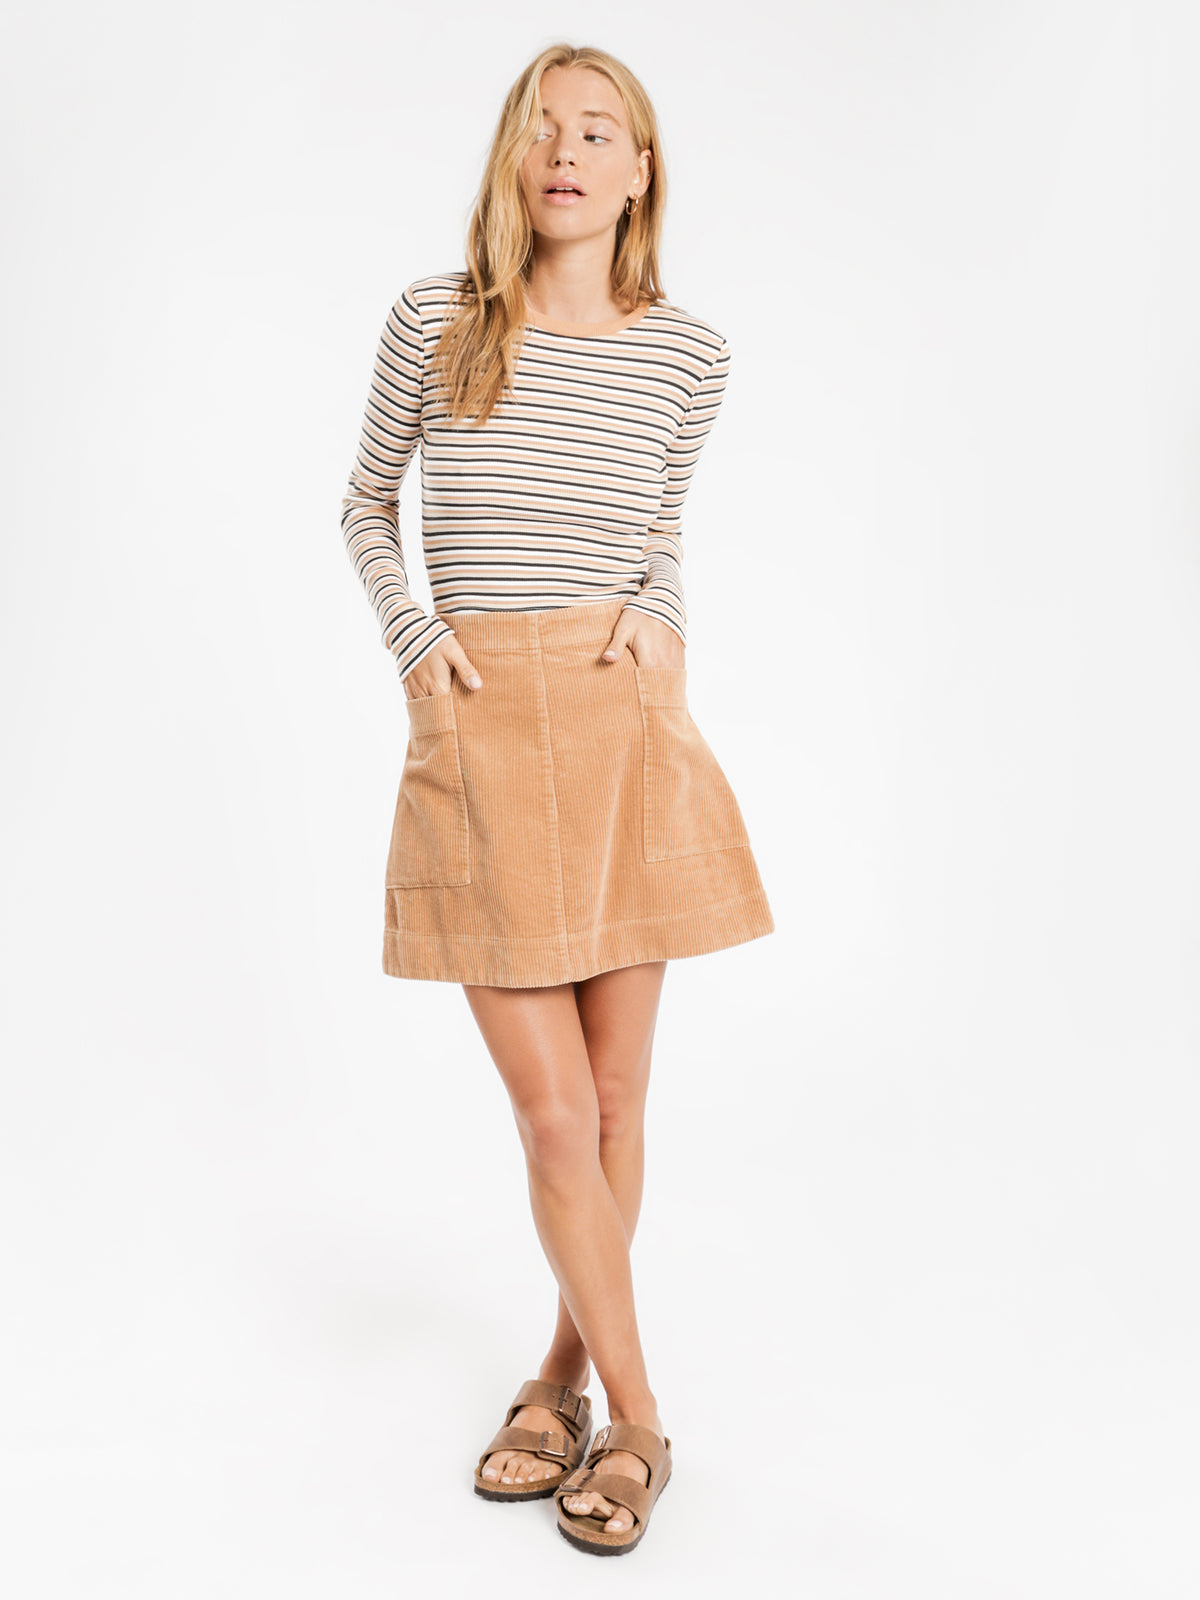 Corduroy Mini Skirt in Sand